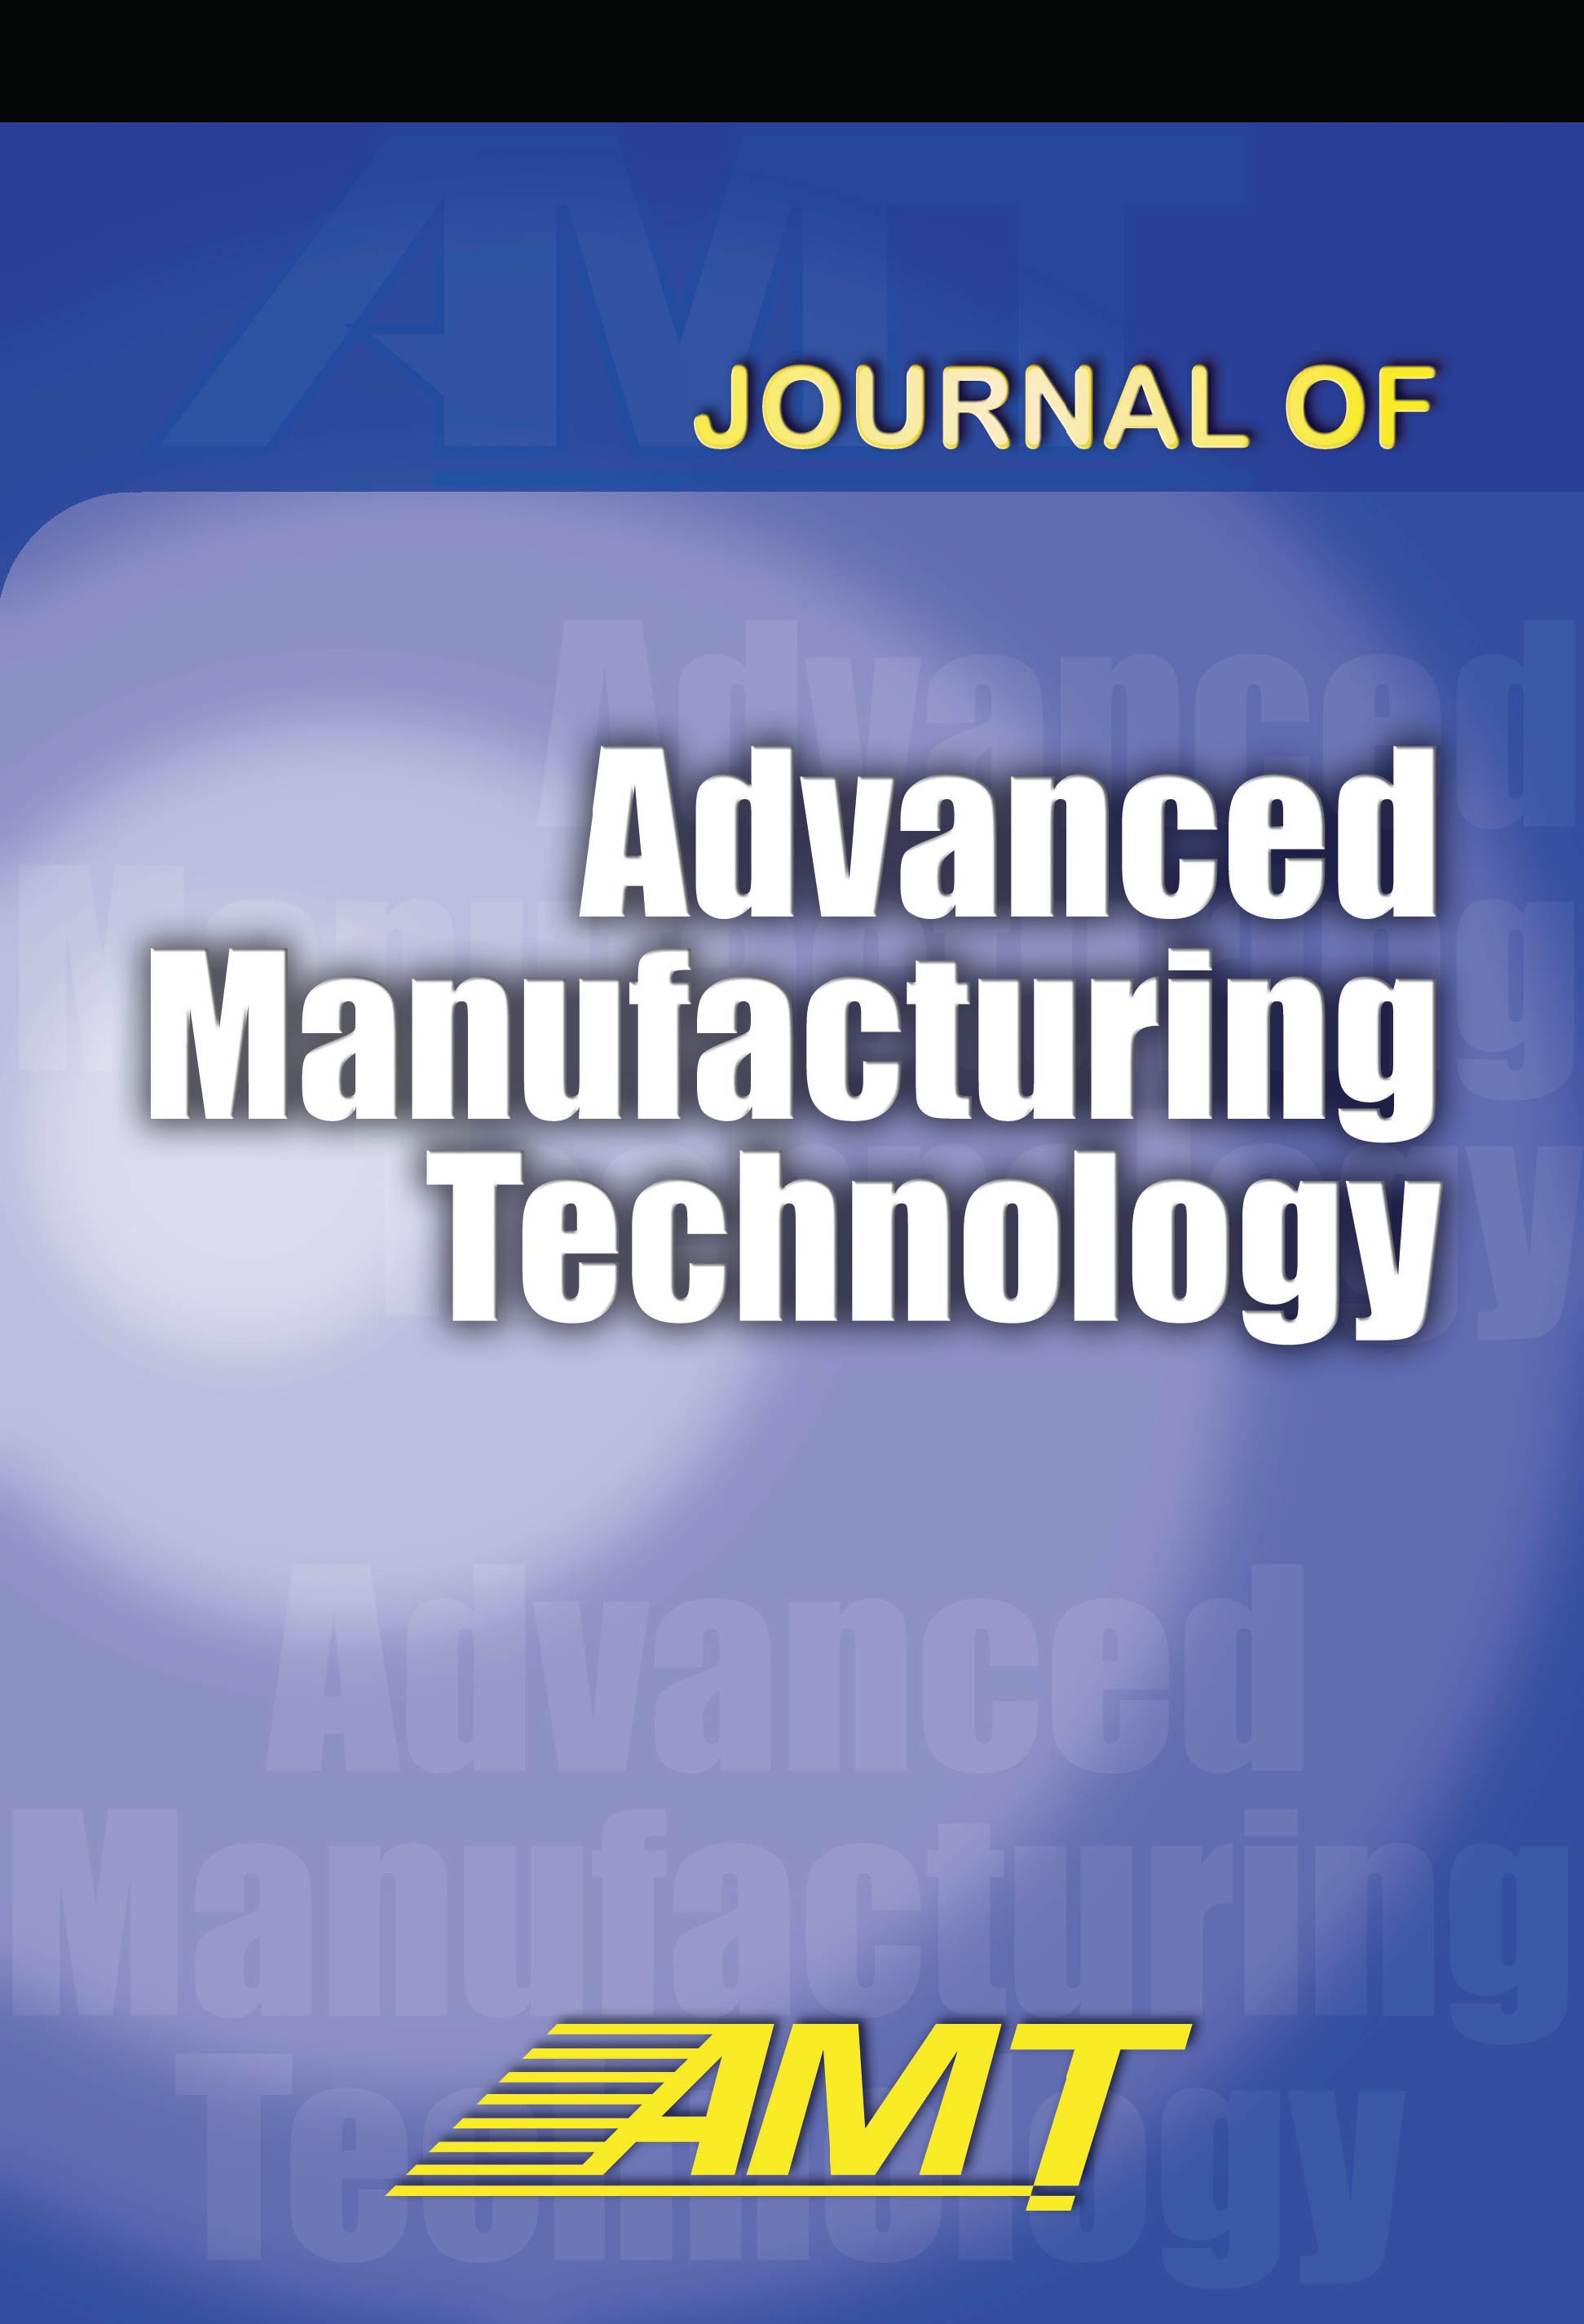 Journal of Advanced Manufacturing Technology | ICI Journals Master List